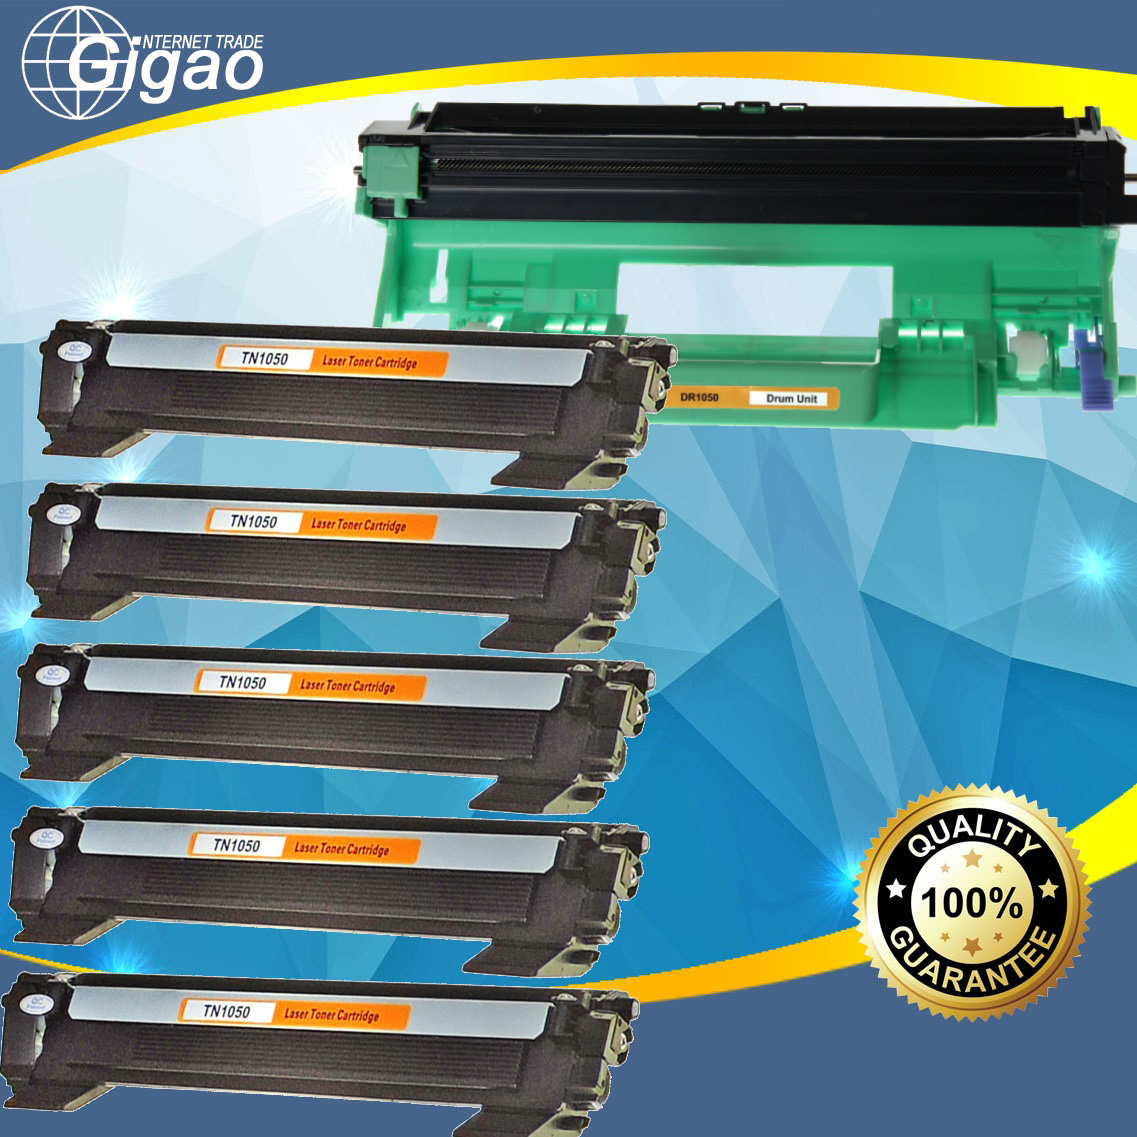 5x Toner TN-1050 + 1x Trommel / Drum DR-1050 für Brother DCP-1610W